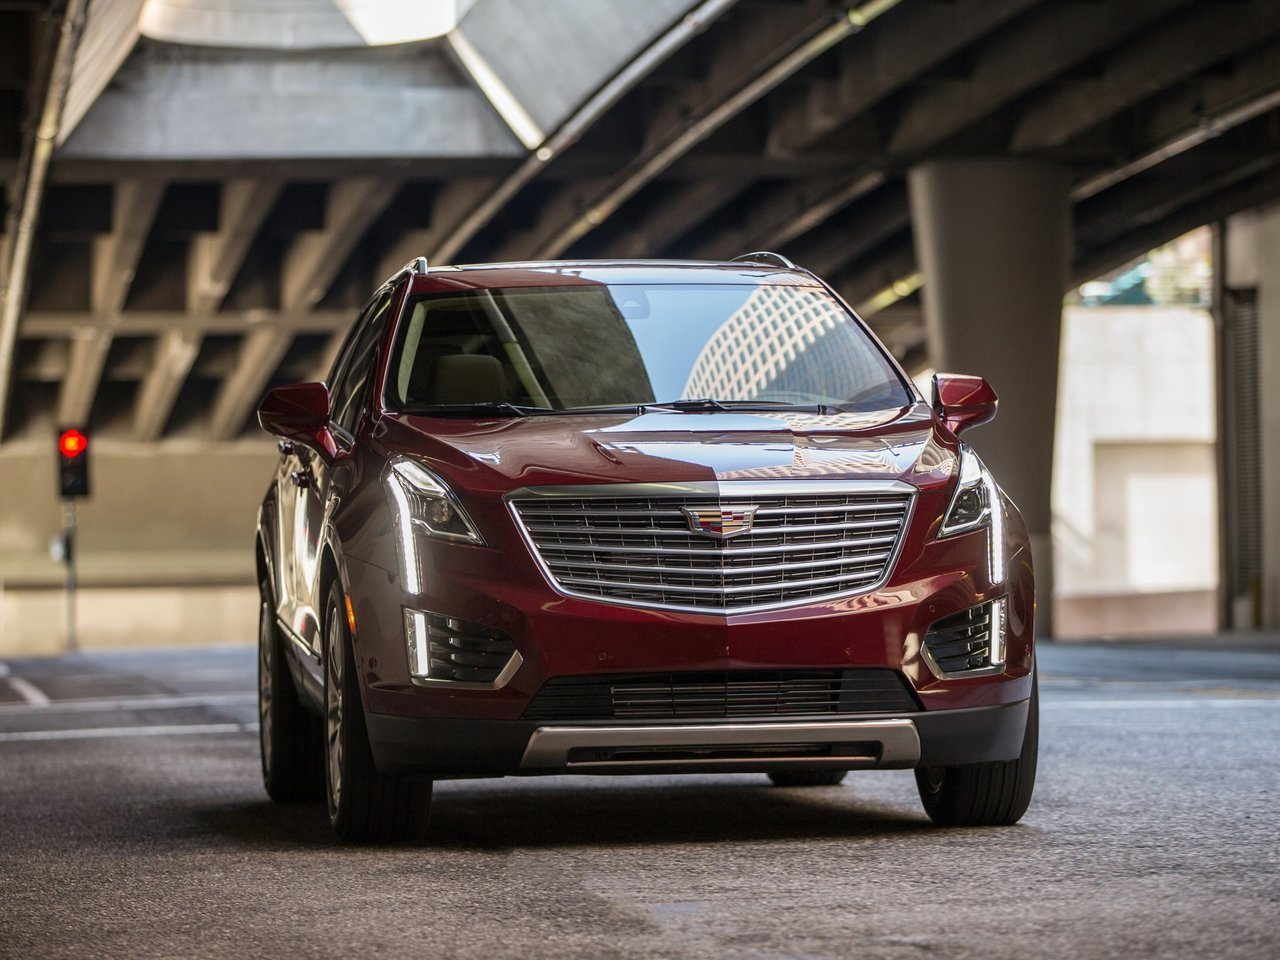 2017 cadillac xt5 review price photo and specs. Black Bedroom Furniture Sets. Home Design Ideas